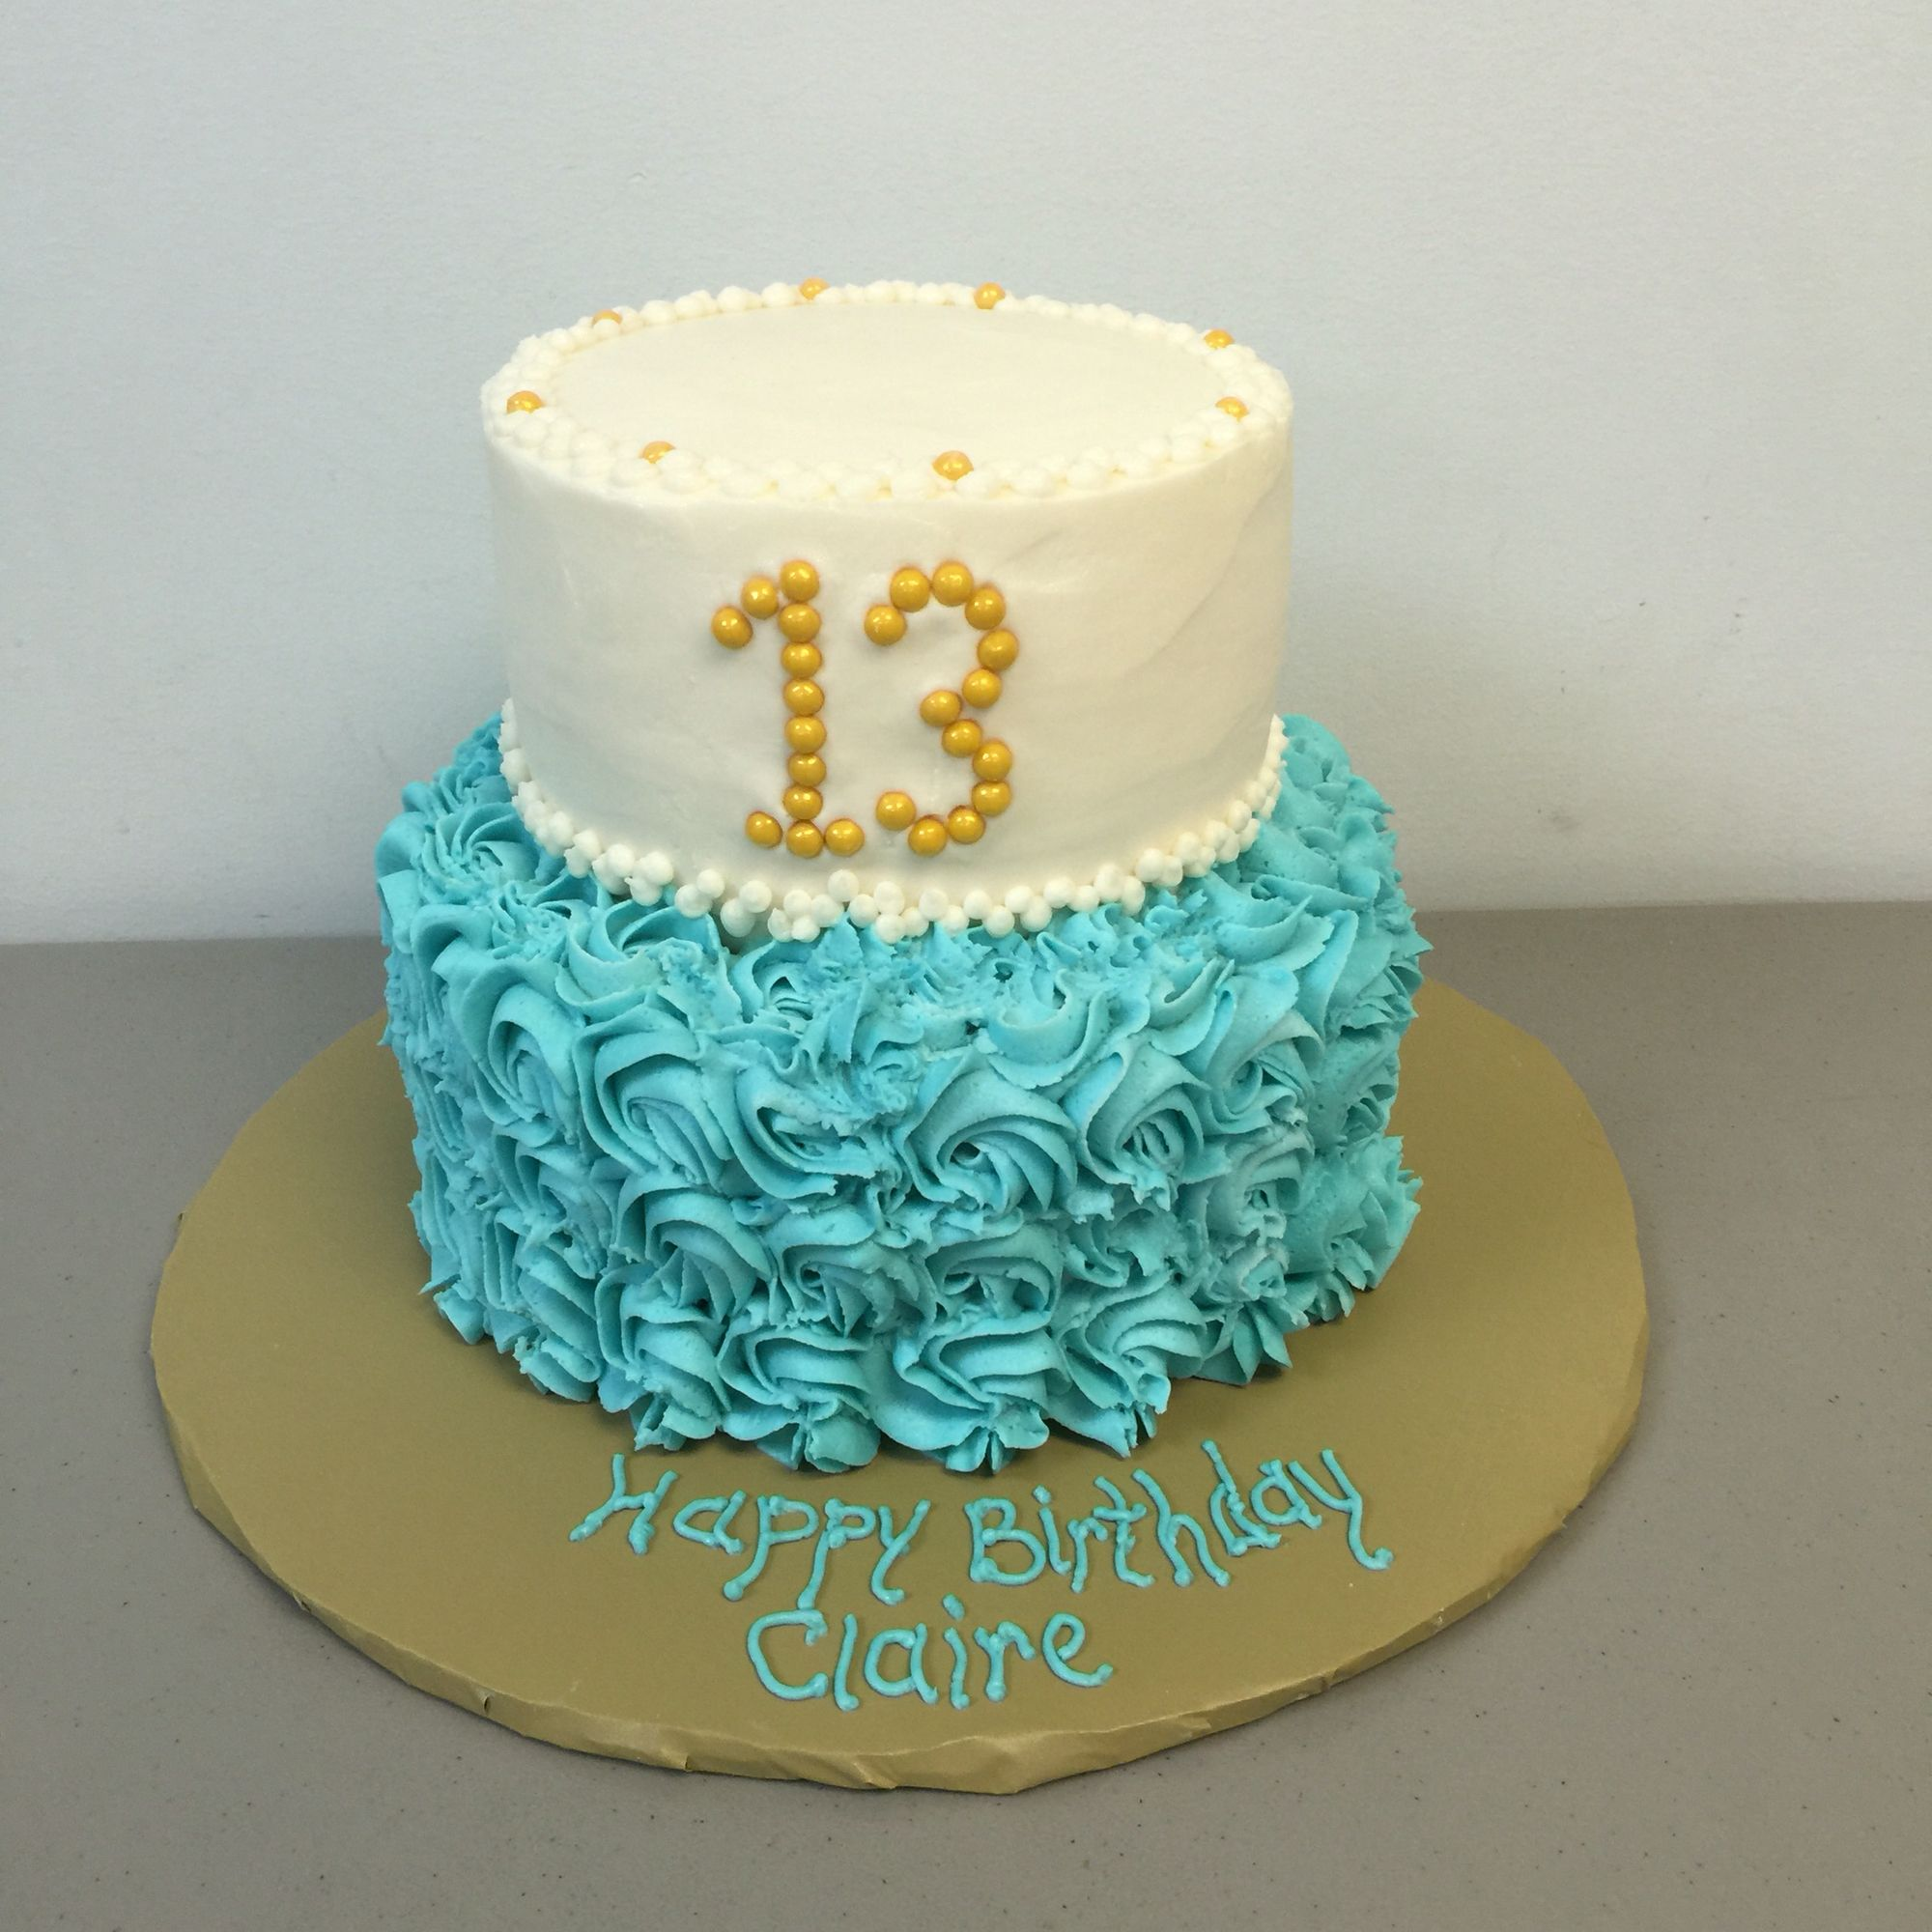 13 Year Old Birthday Cake Just For Fun Cakes By Rhonda F